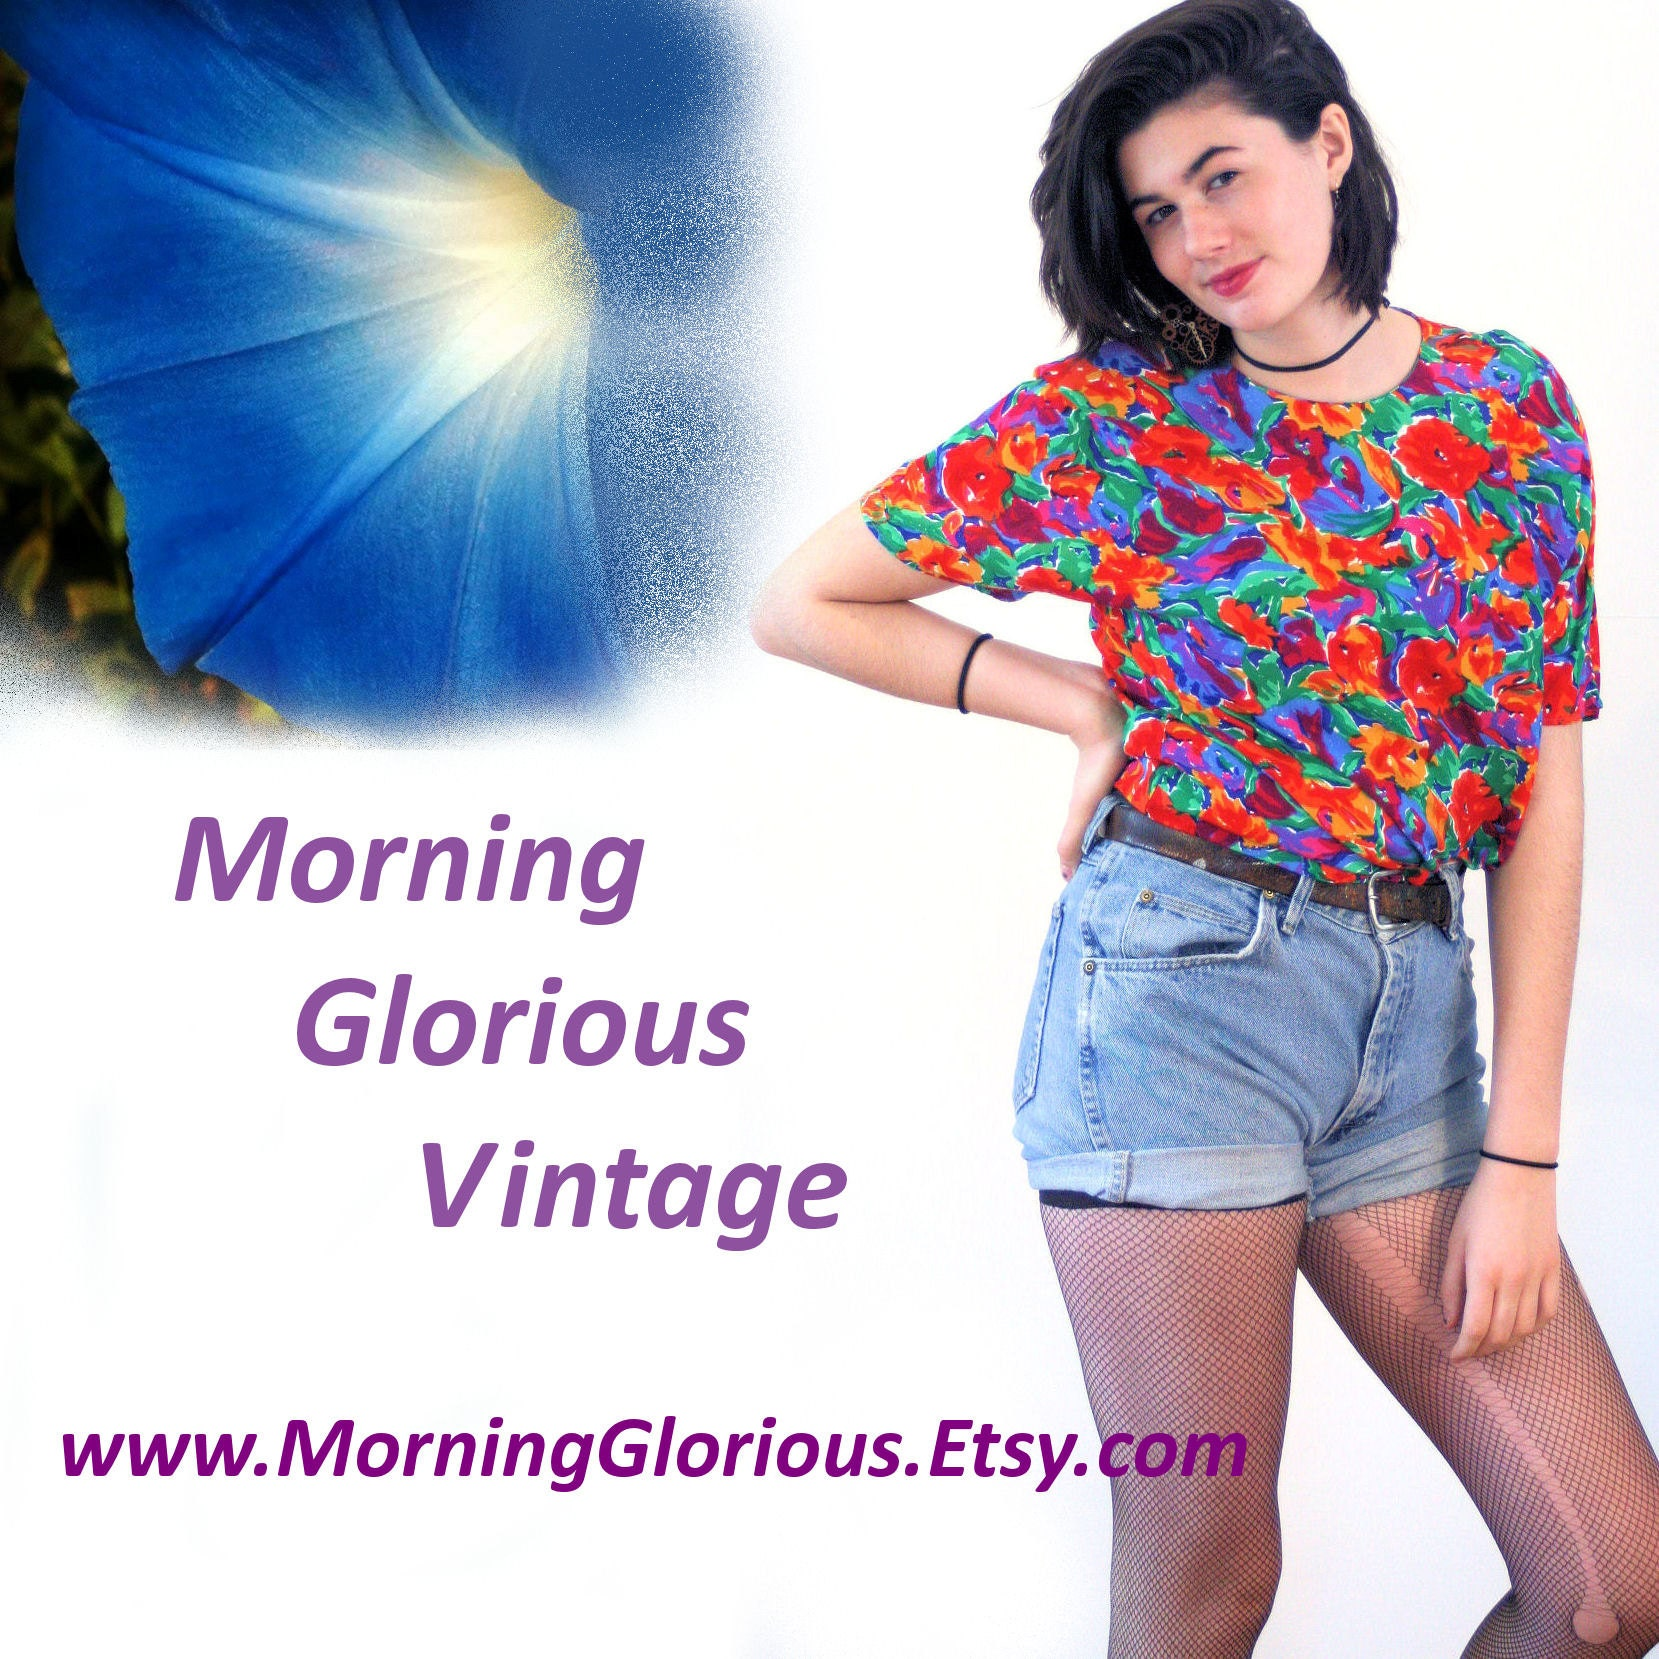 A glorious selection of vintage fashion von MorningGlorious auf Etsy